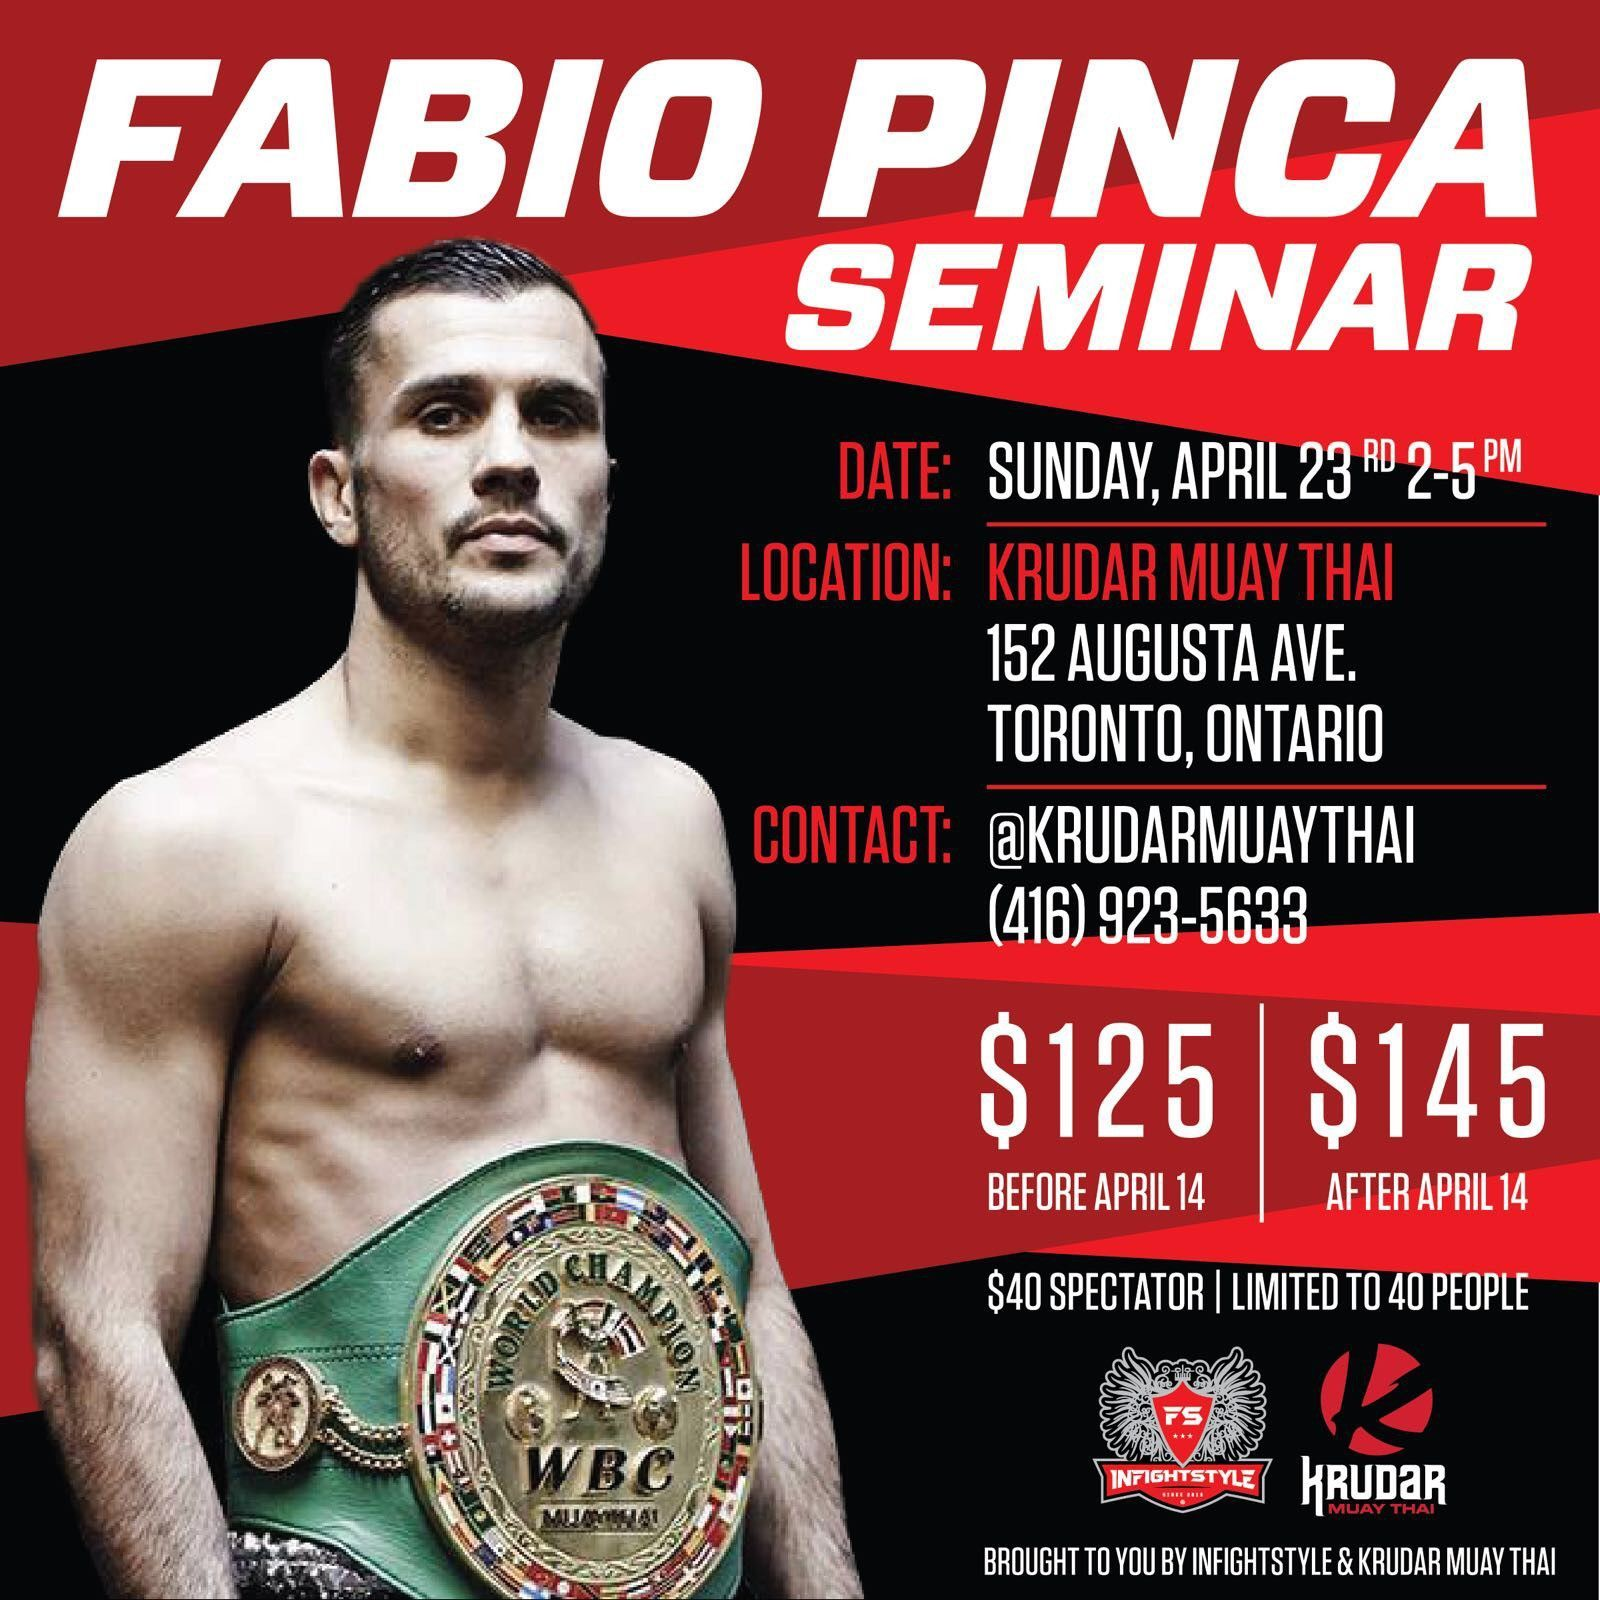 Fabio Pinca Seminar Digital Ticket